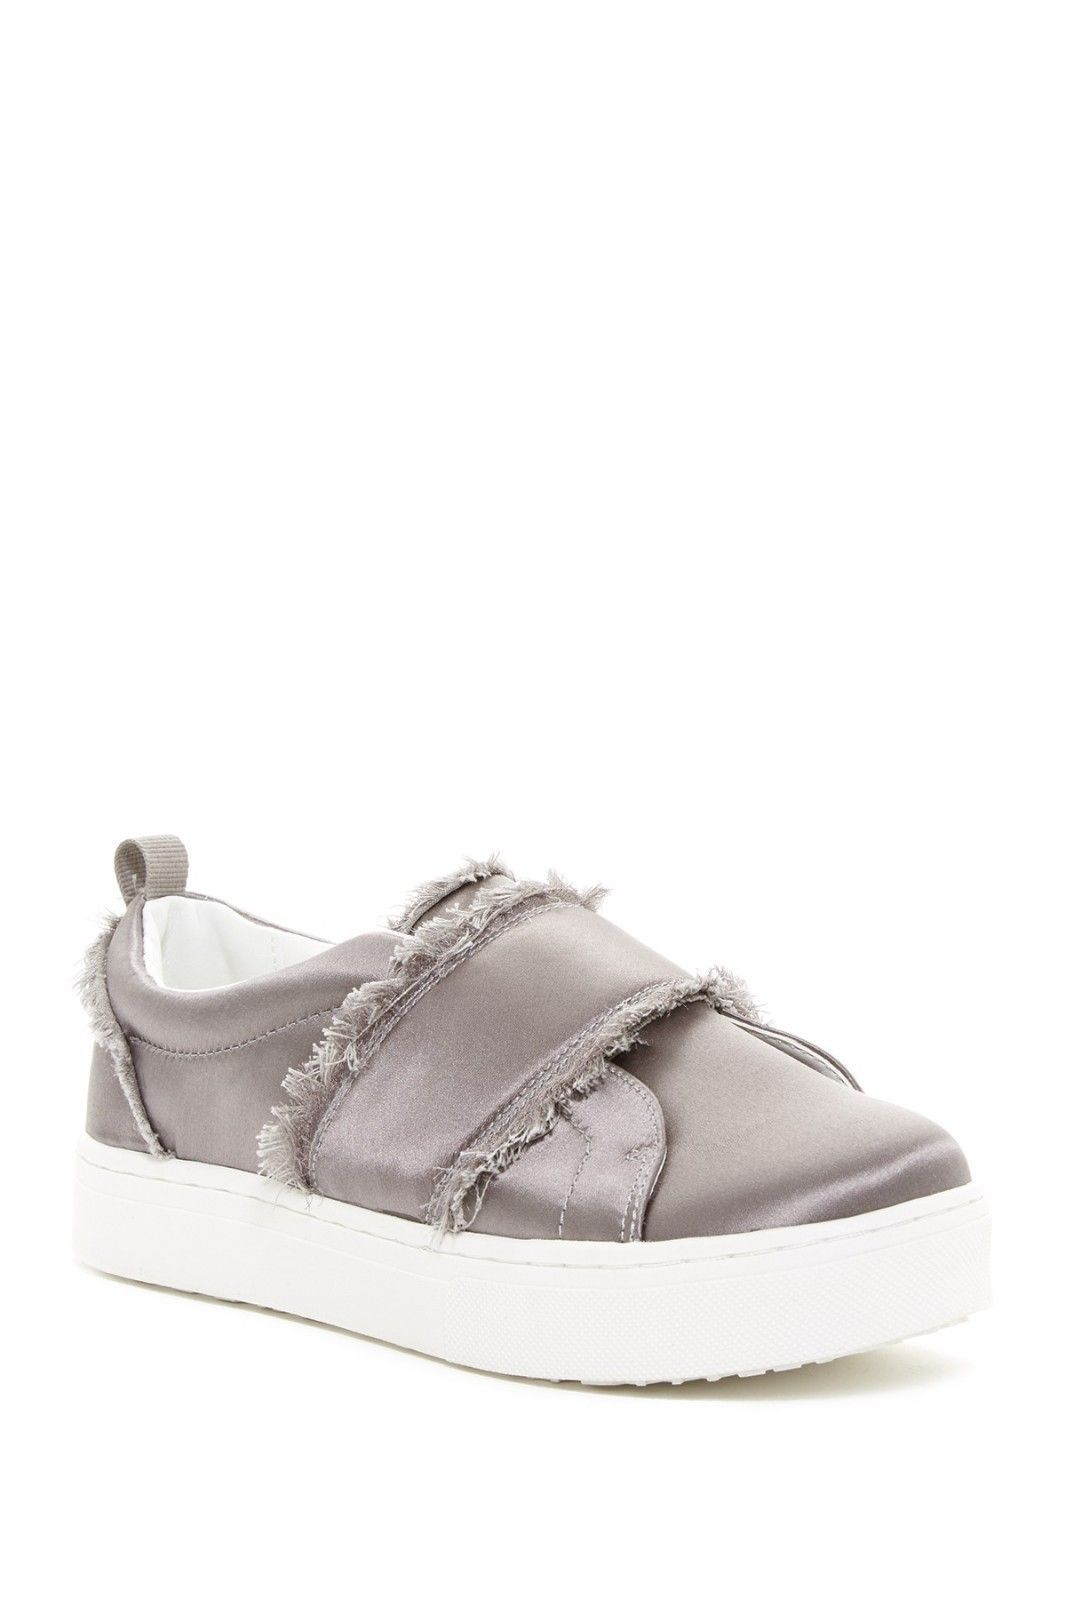 40bf088d0 SAM EDELMAN New Levine Slip On Sneaker Shoes and 29 similar items. S l1600